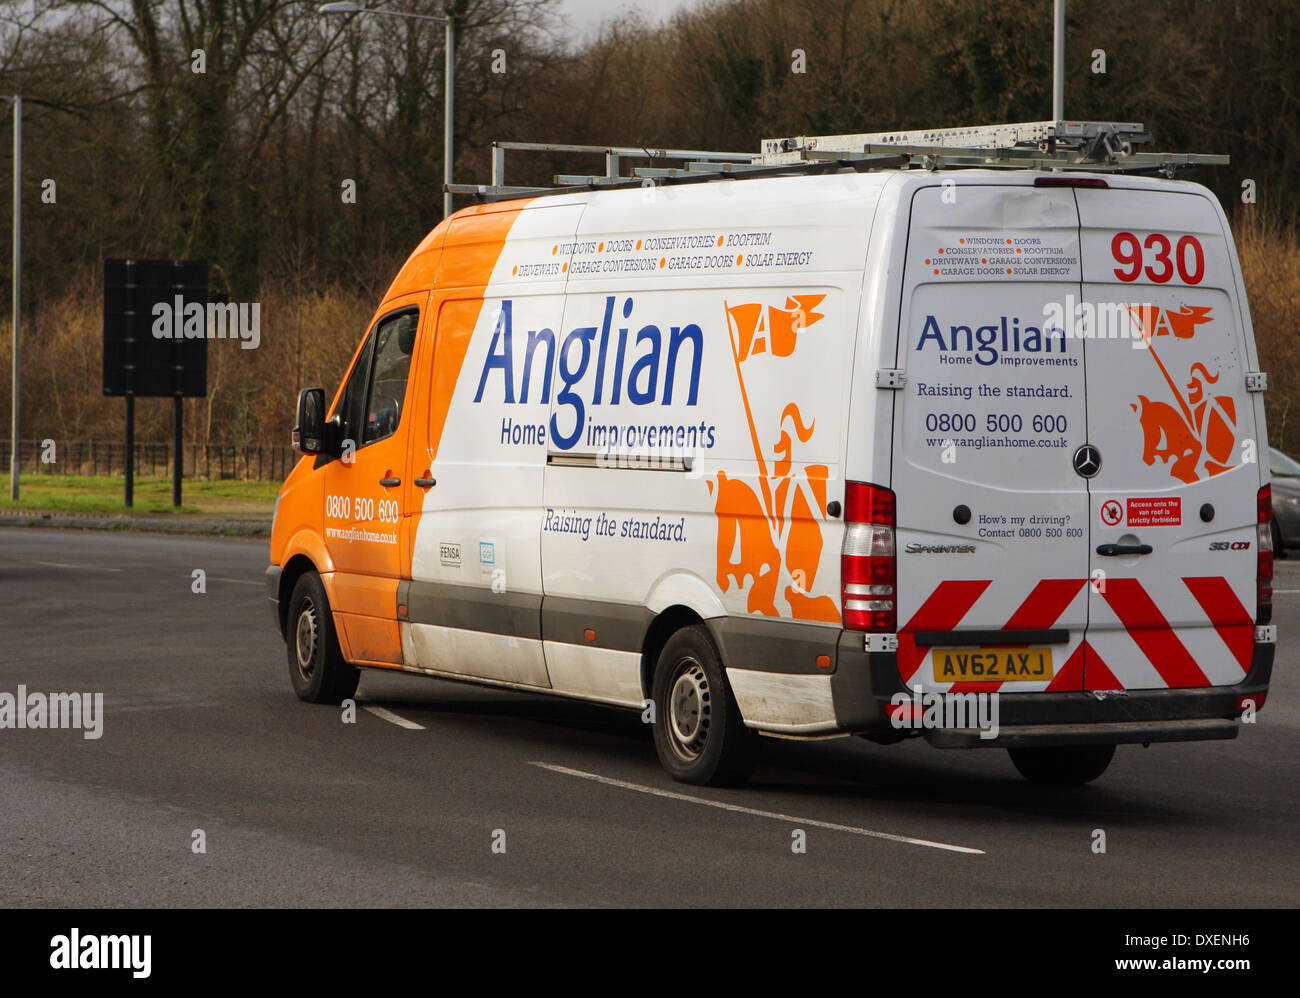 an anglian home improvements van traveling around a. Black Bedroom Furniture Sets. Home Design Ideas